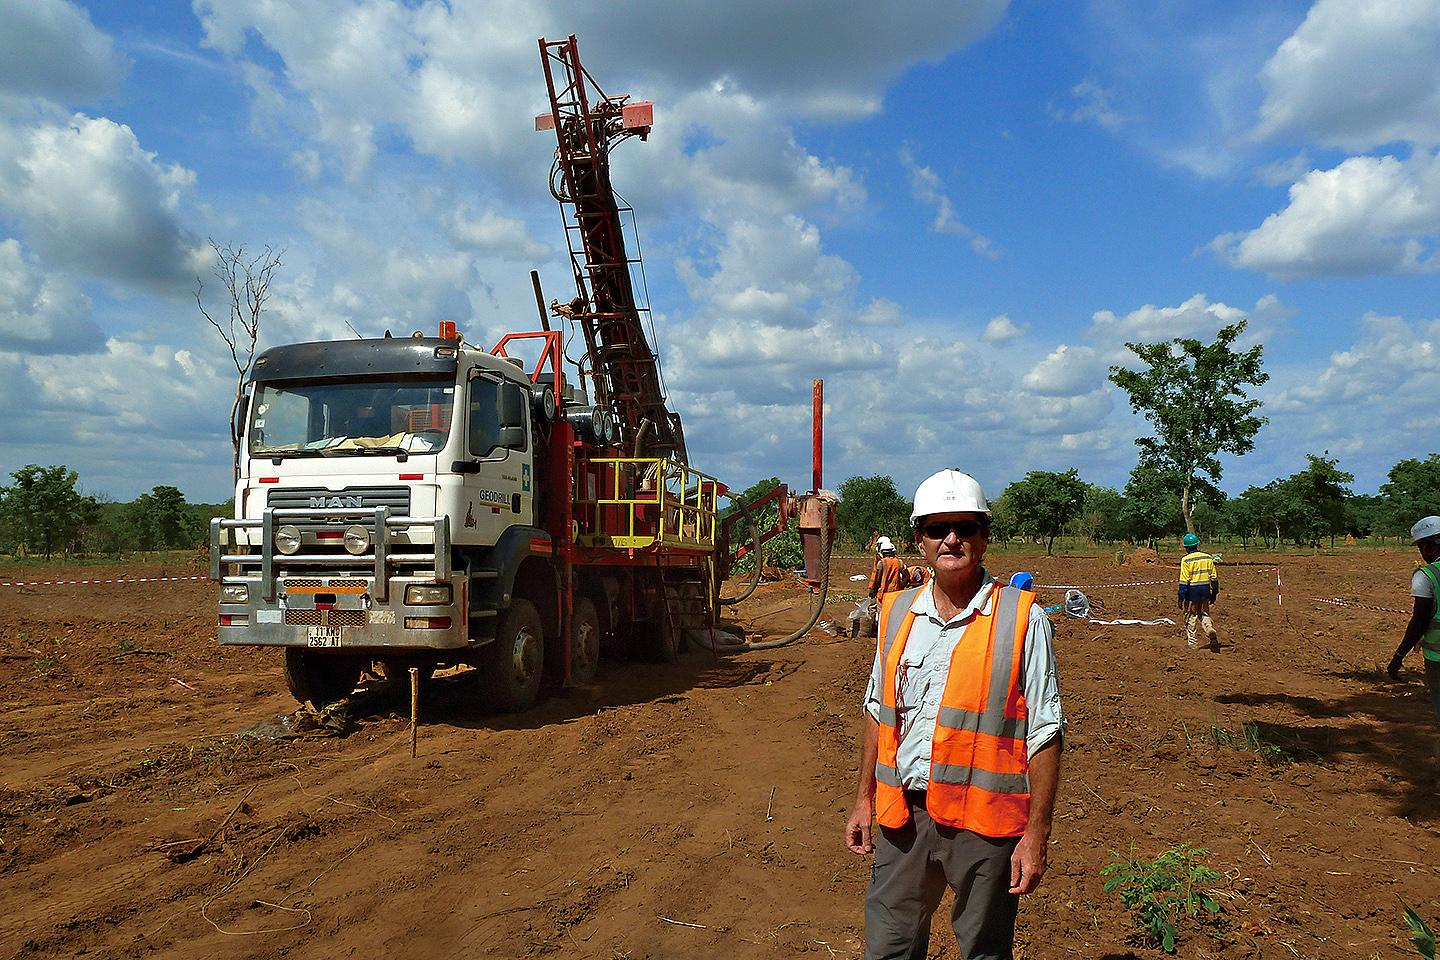 High-grade gold hits rolling in for Mako in Cote d'Ivoire